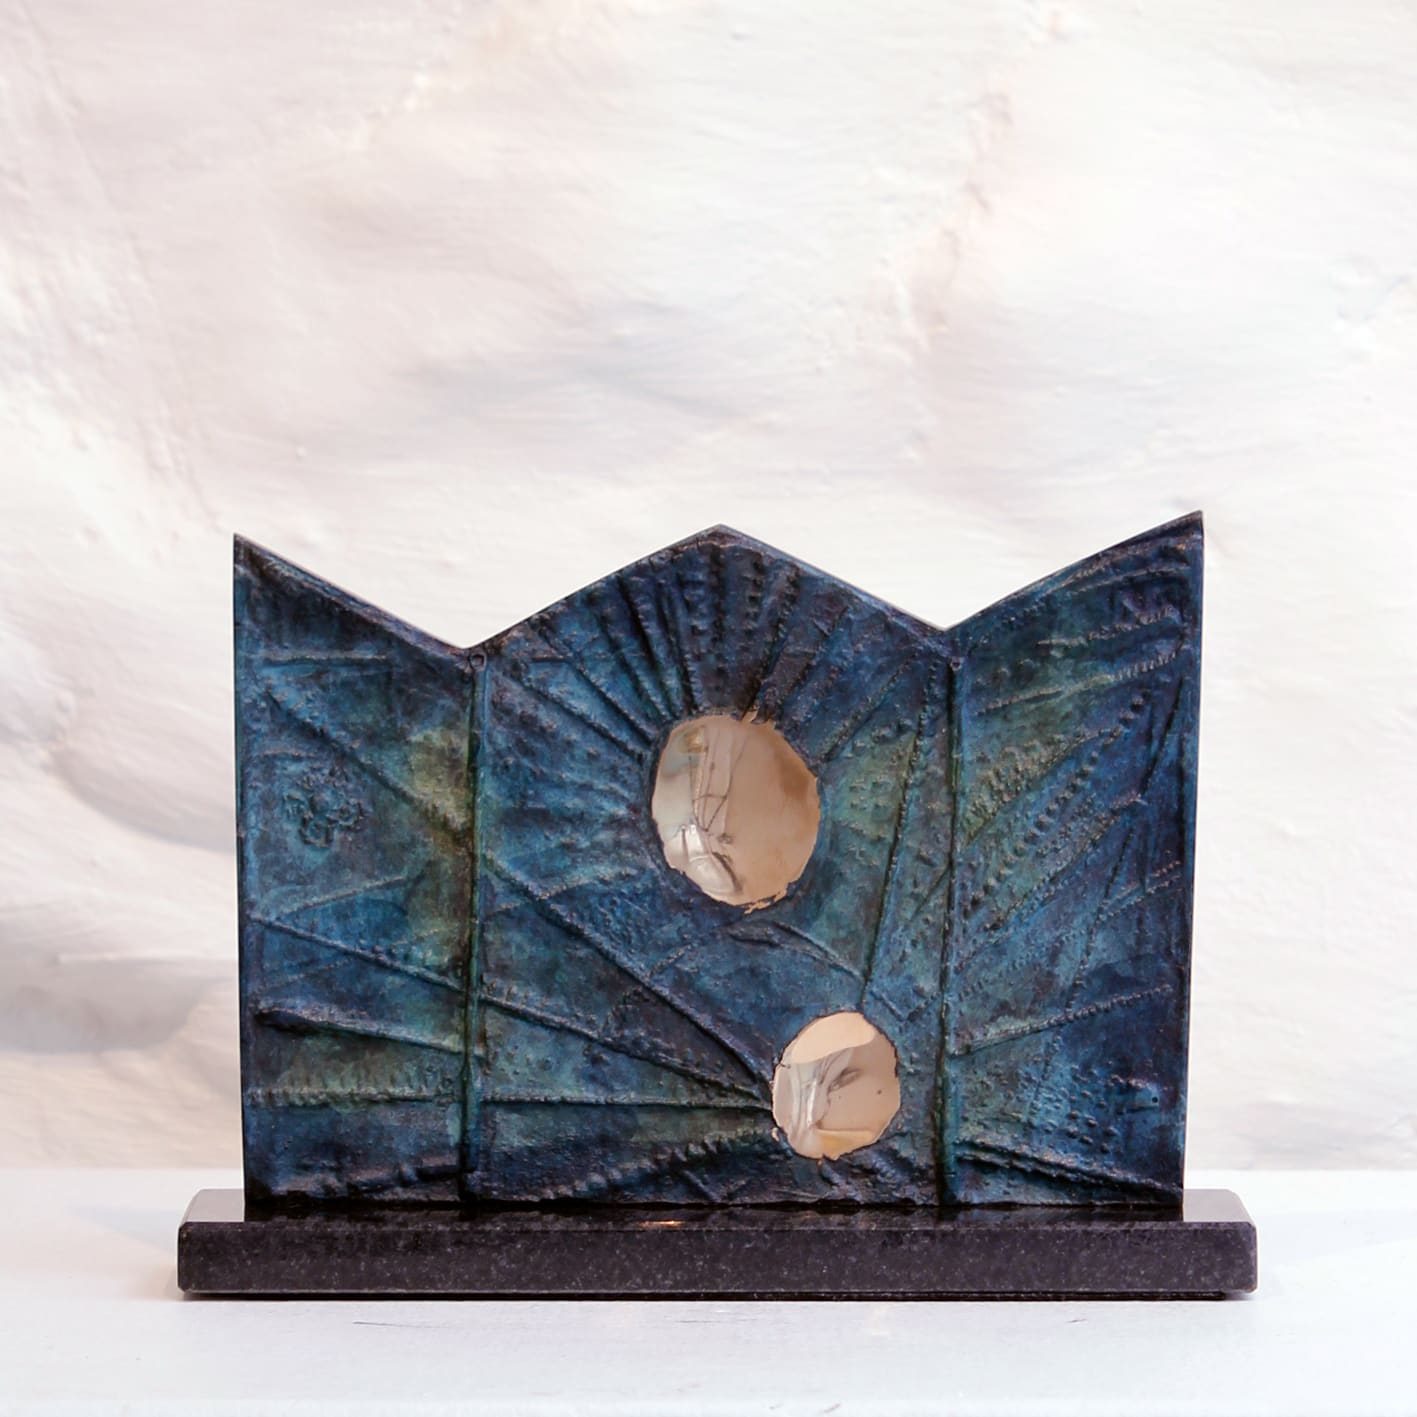 """<span class=""""link fancybox-details-link""""><a href=""""/artists/69-margaret-lovell-d.litt.-hon-frbs-rwa/works/7459-margaret-lovell-d.litt.-hon-frbs-rwa-triptych-f-1965/"""">View Detail Page</a></span><div class=""""artist""""><strong>Margaret Lovell D.Litt. Hon FRBS RWA</strong></div> b. 1939 <div class=""""title""""><em>Triptych F</em>, 1965</div> <div class=""""signed_and_dated"""">stamped with the initials 'ML' and the edition number, by the artist</div> <div class=""""medium"""">cast bronze (patinated) on granite base</div> <div class=""""dimensions"""">10 x 15 x 4 cm<br /> 4 x 5 7/8 x 1 5/8 in</div> <div class=""""edition_details"""">Artist's Copy 1 of 2, aside from the edition of 4</div><div class=""""price"""">£945.00</div><div class=""""copyright_line"""">Own Art: £ 94.50 x 10 Months, 0% APR</div>"""